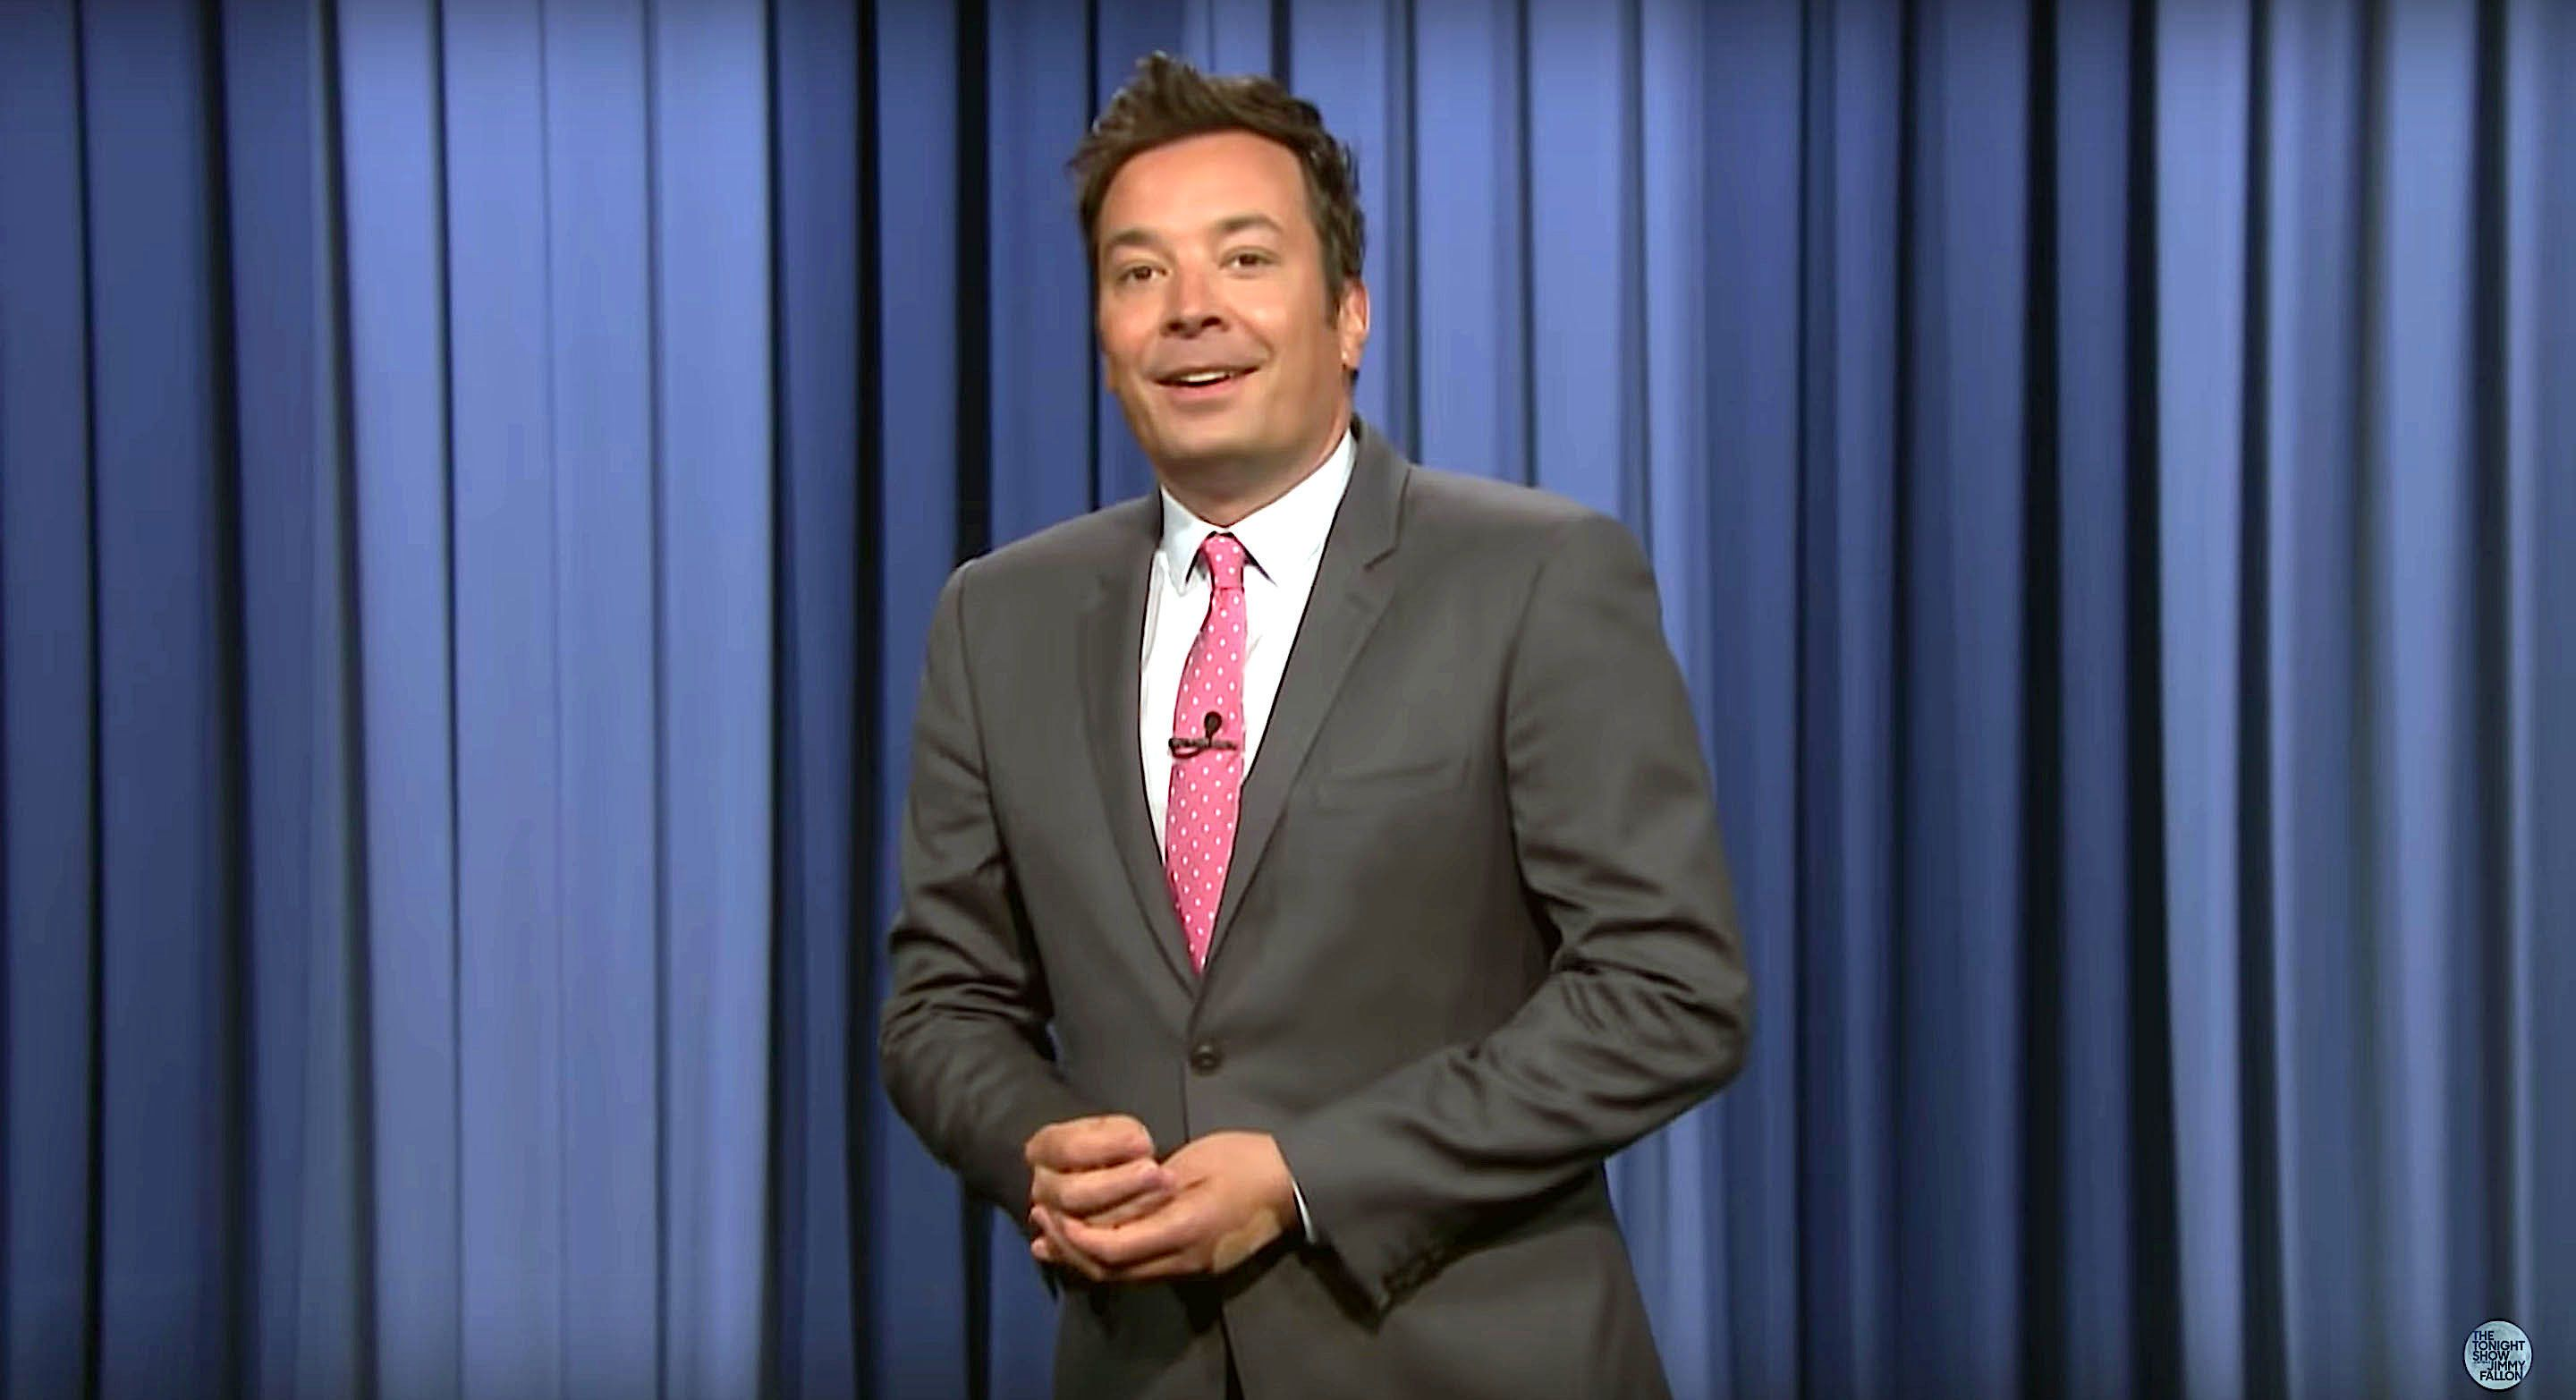 Jimmy Fallon weighs in on the Trump-Putin summit